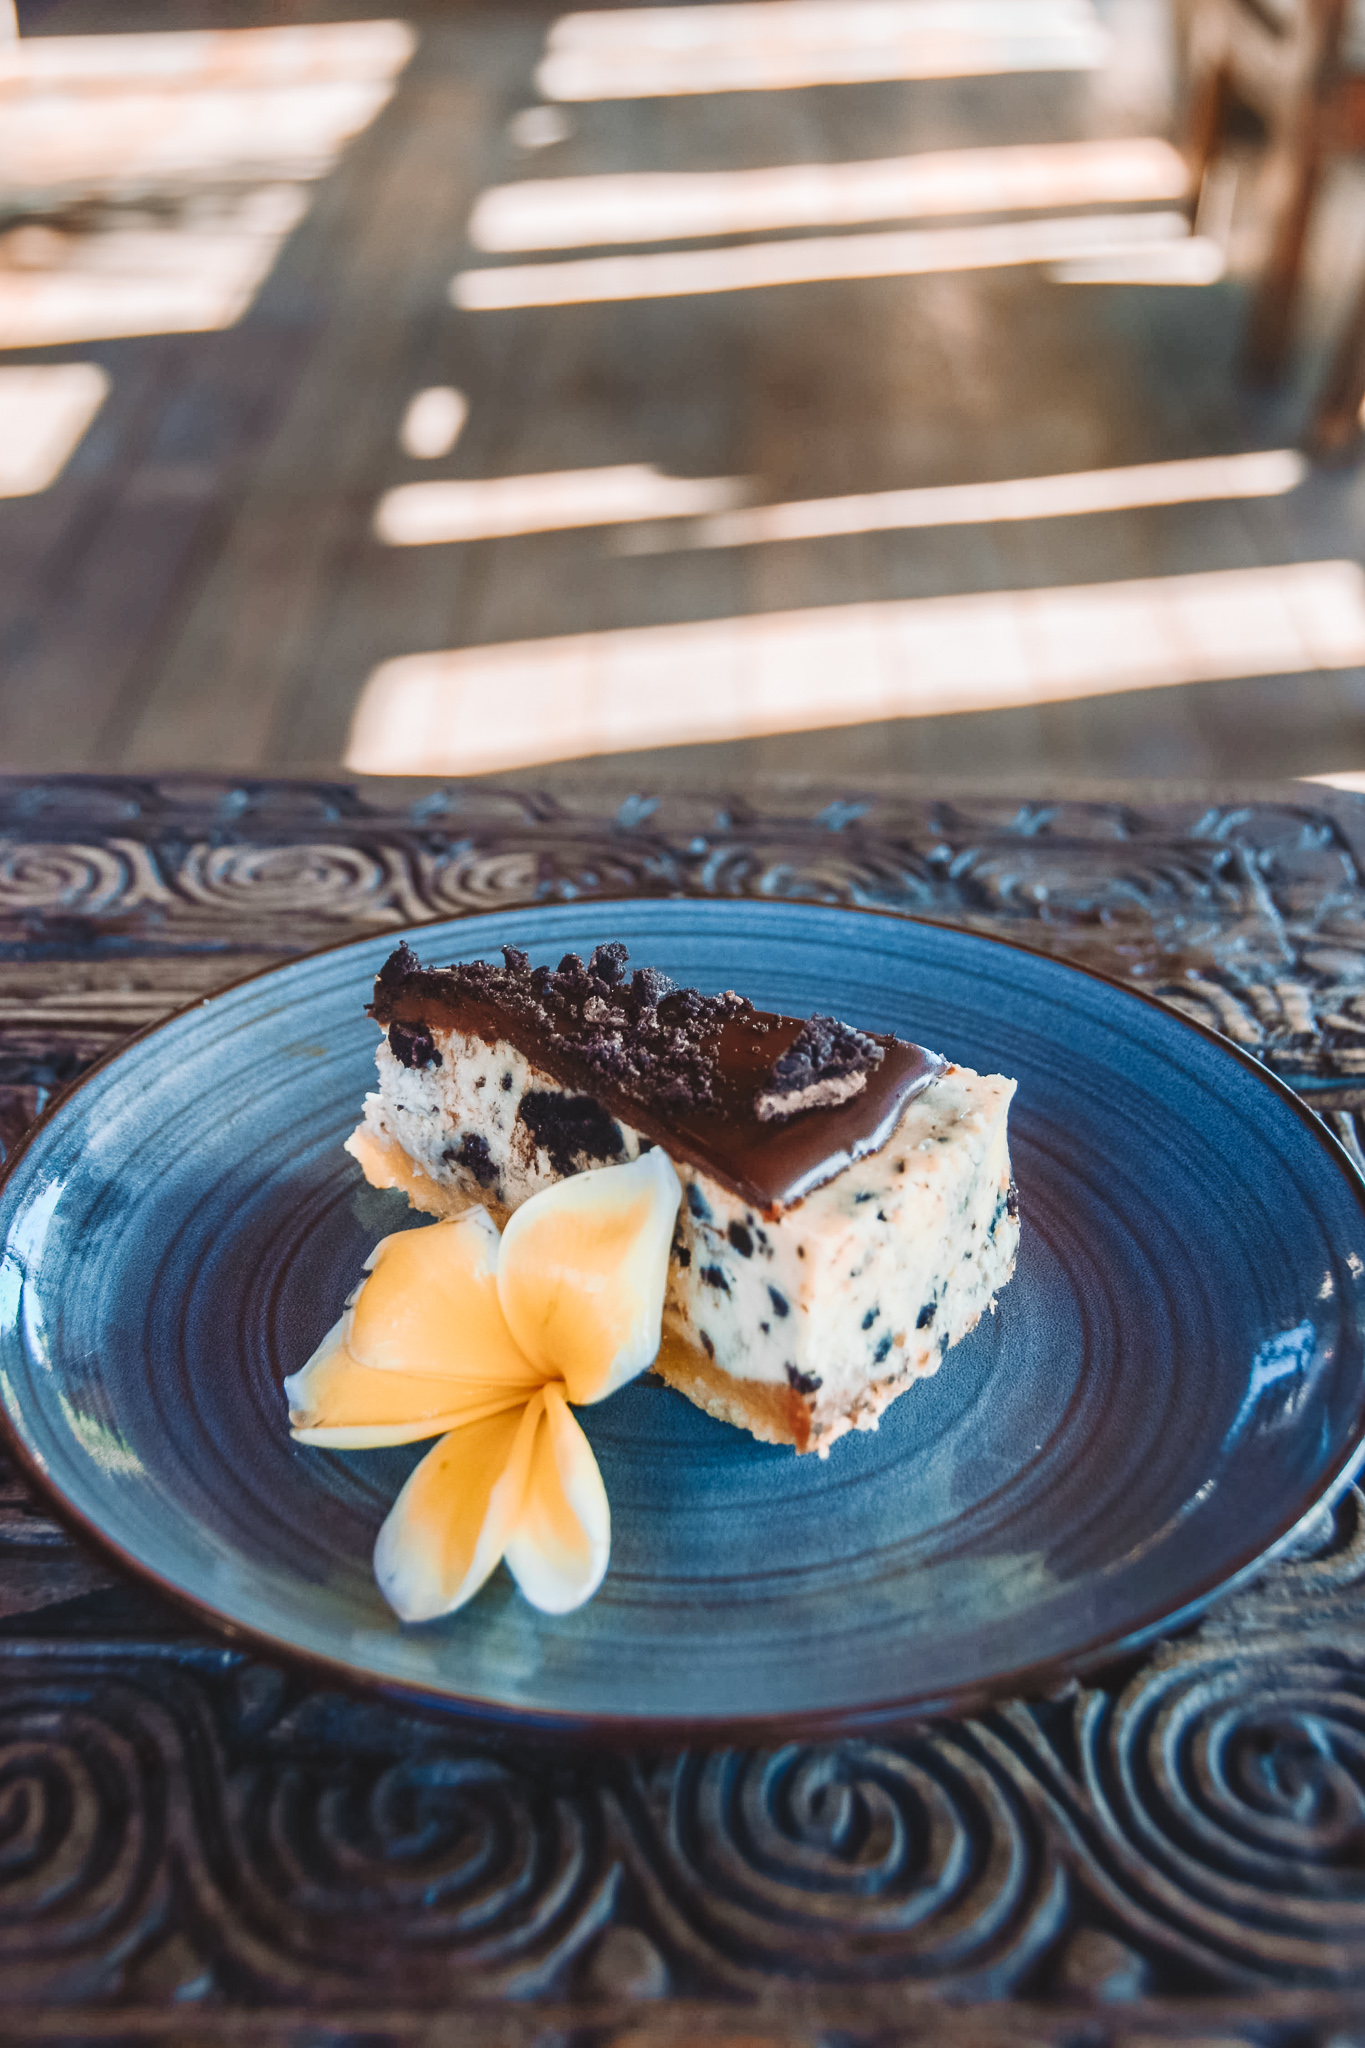 Oreo cheesecake at Betelnut in Canggu, Bali